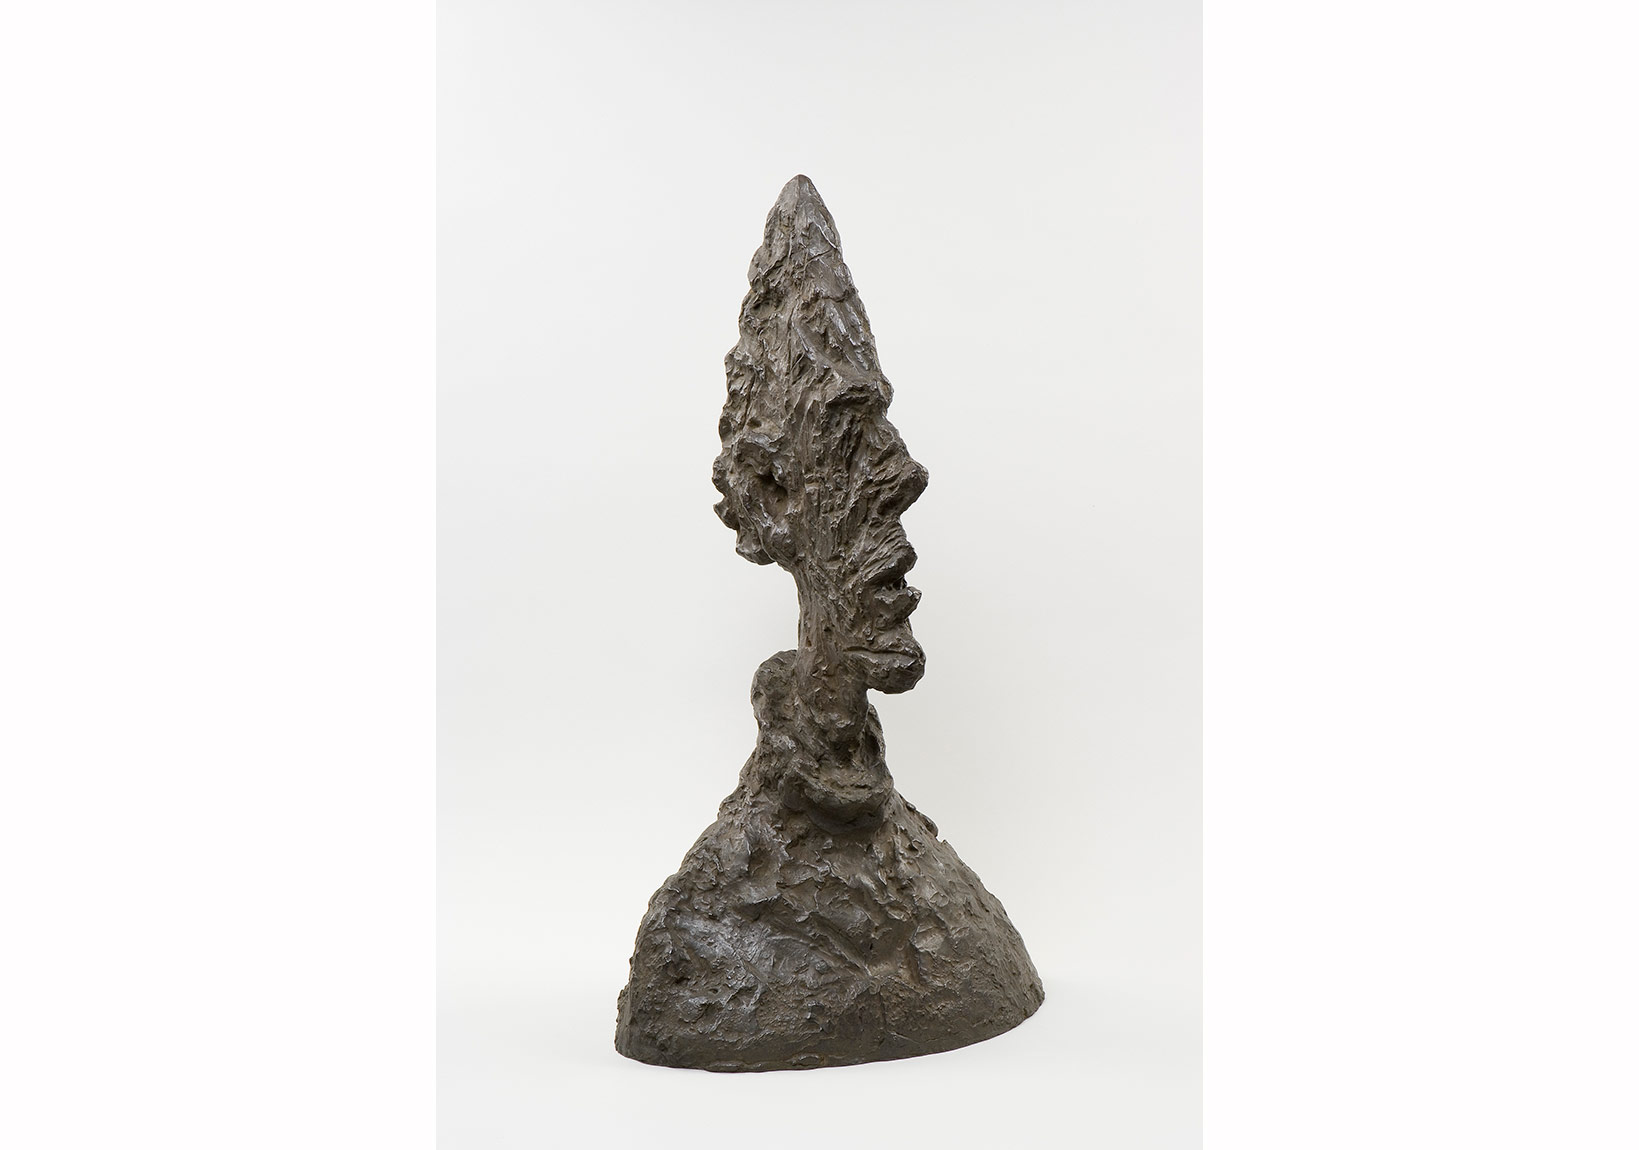 Alberto Giacometti, Uzun İnce Baş, 1954 - Tall Thin Head, 1954 Bronz / Bronze, 64,5 x 38,1 x 24,4 cm Giacometti Vakfı Koleksiyonu, Paris, env. 1994-0175 /Giacometti Foundation Collection, Paris, inv. 1994-0175 © Estate Giacometti (Fondation Giacometti + ADAGP) Paris, 2015